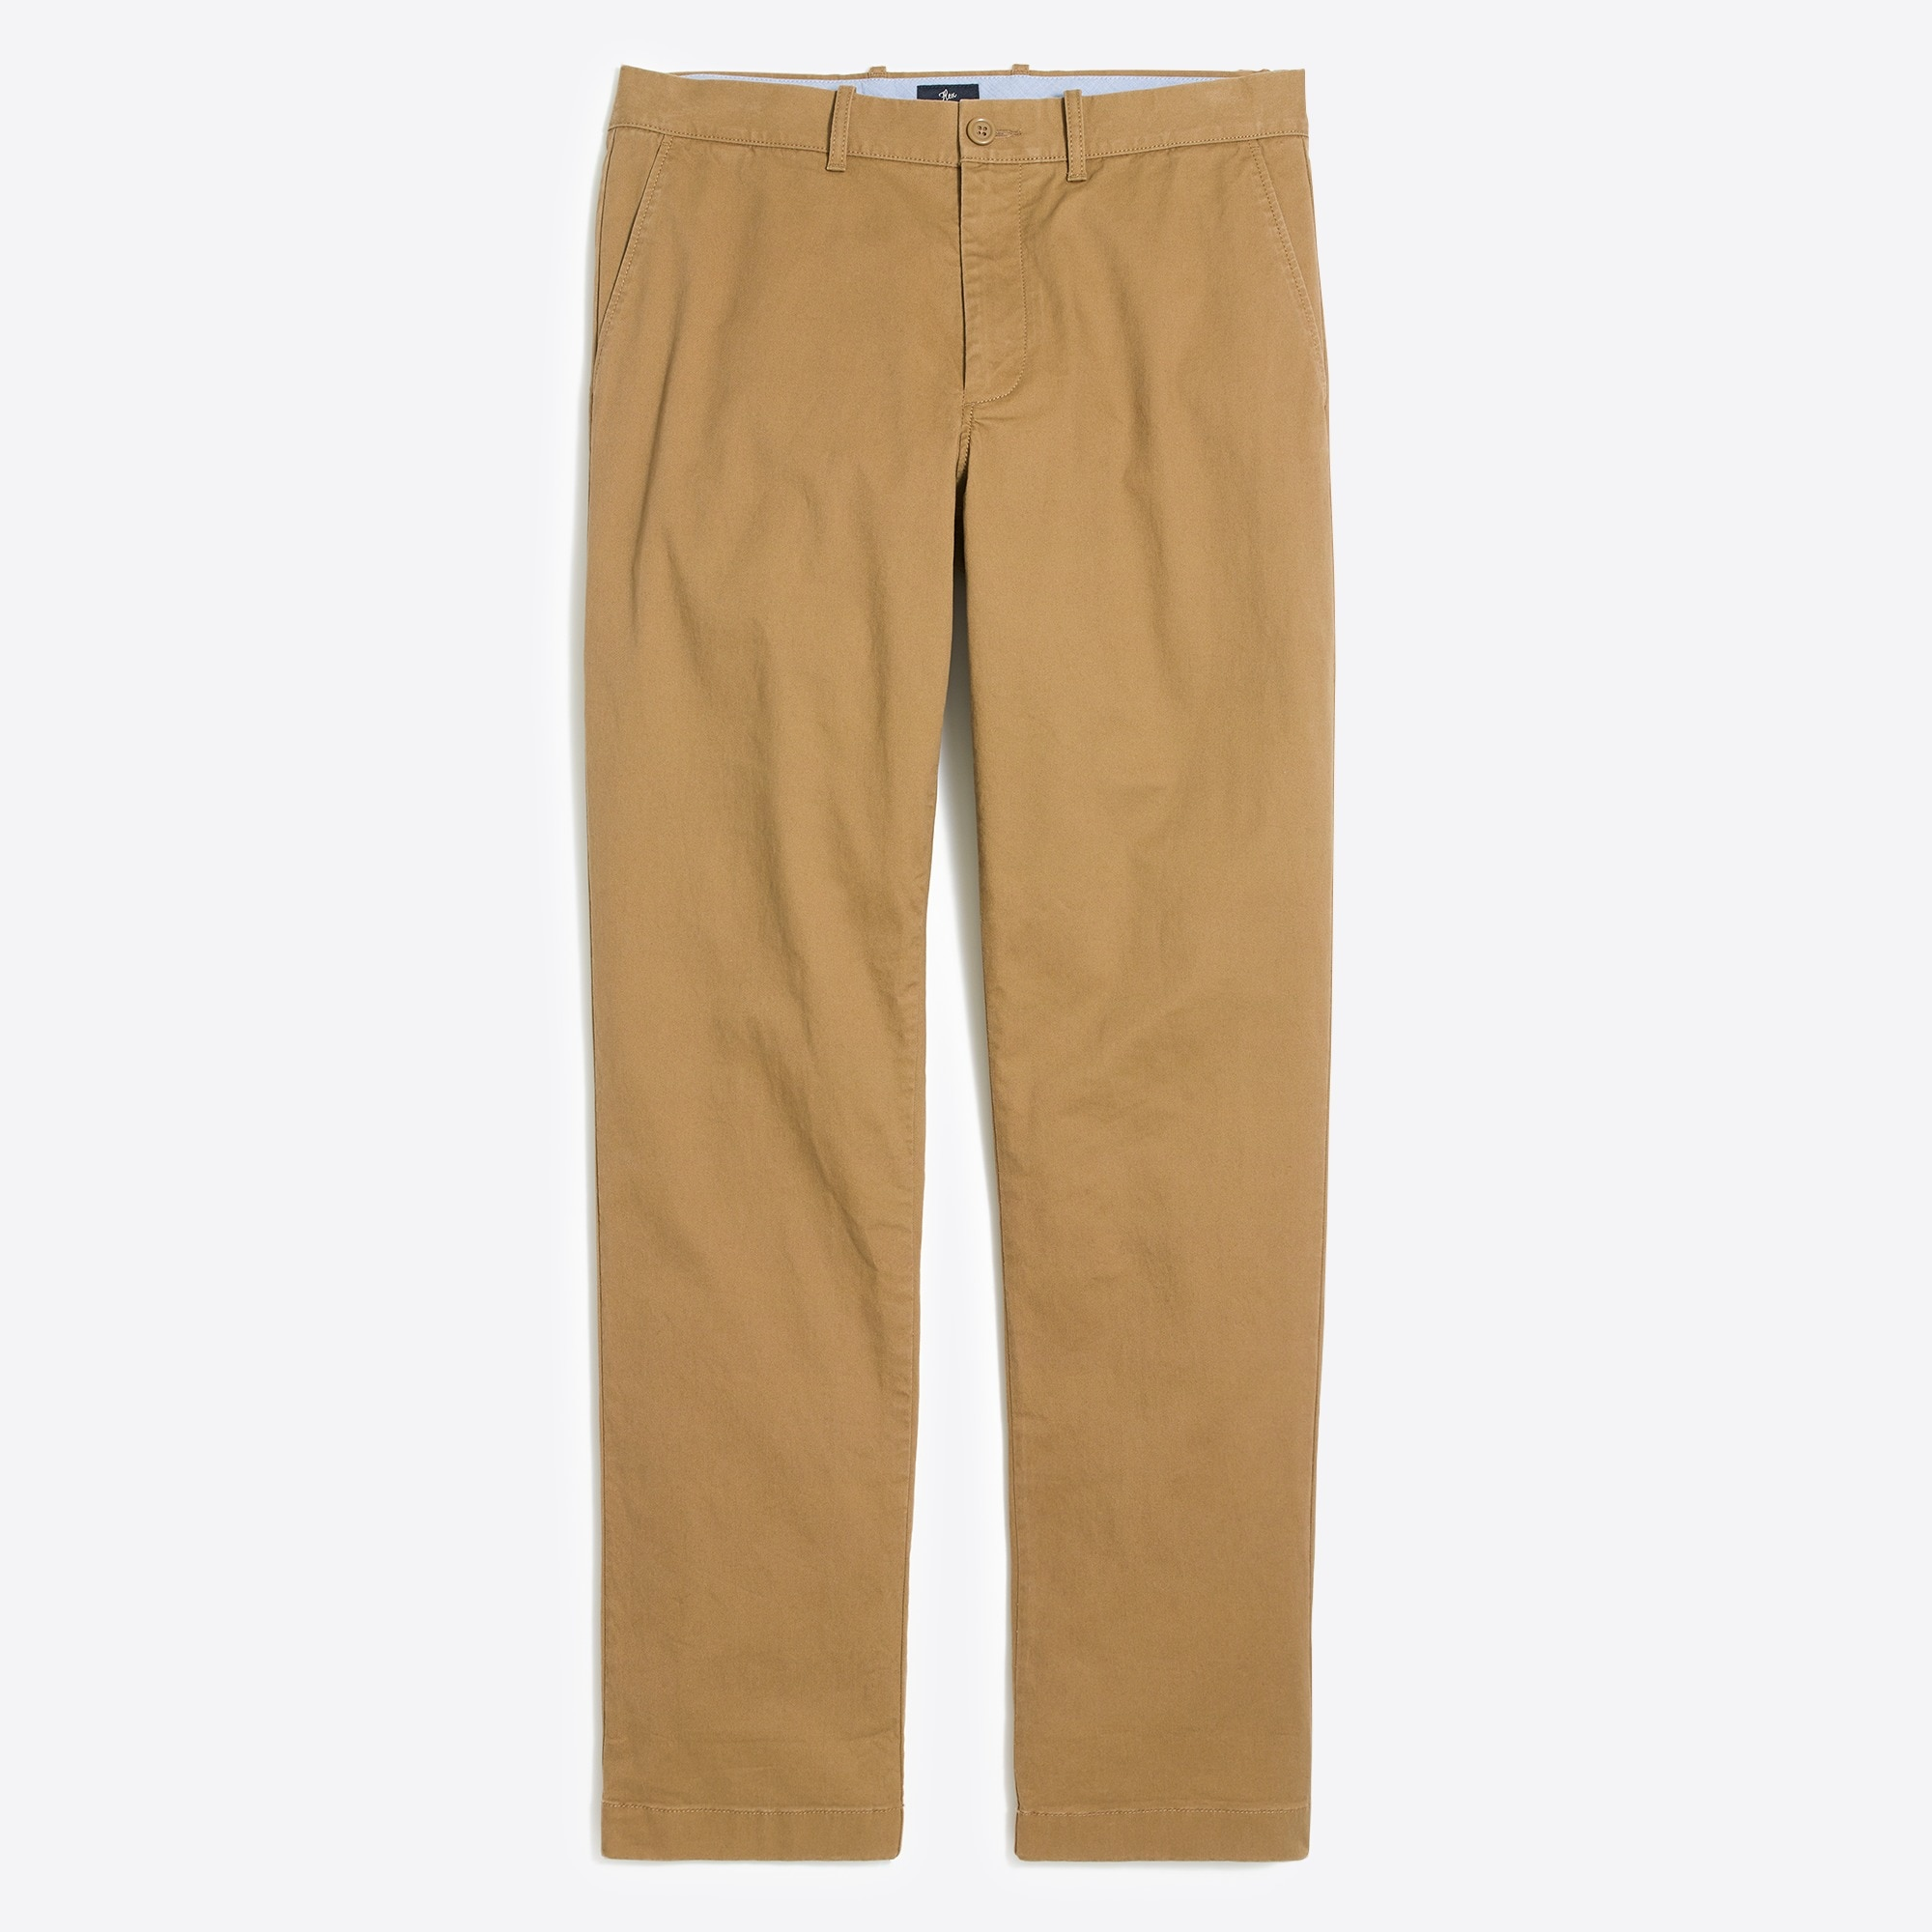 Image 2 for Sutton straight-fit flex chino